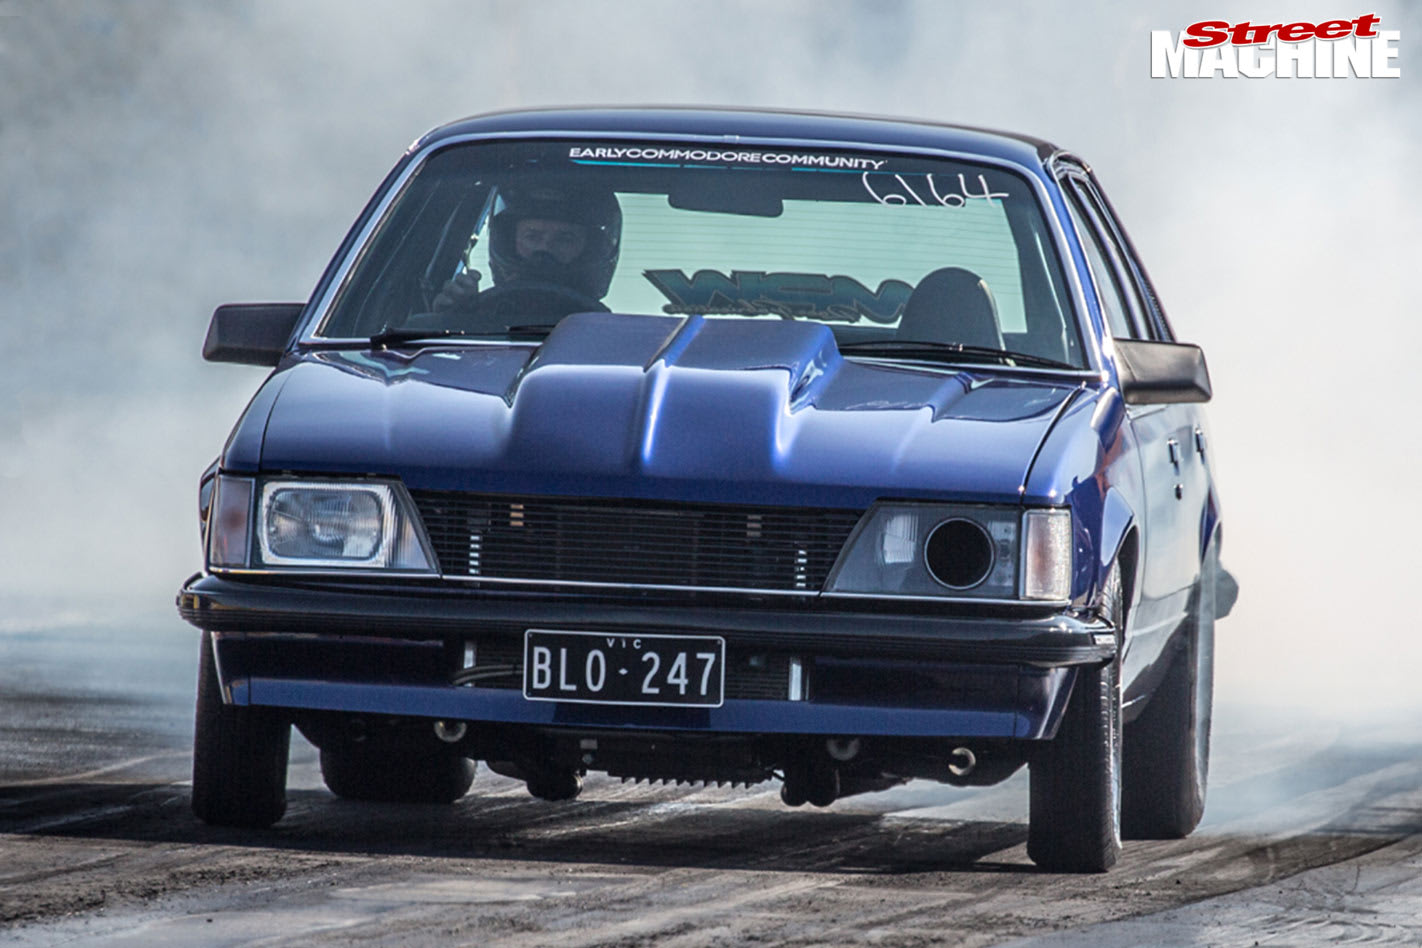 Todd Foley's Holden VH Commodore